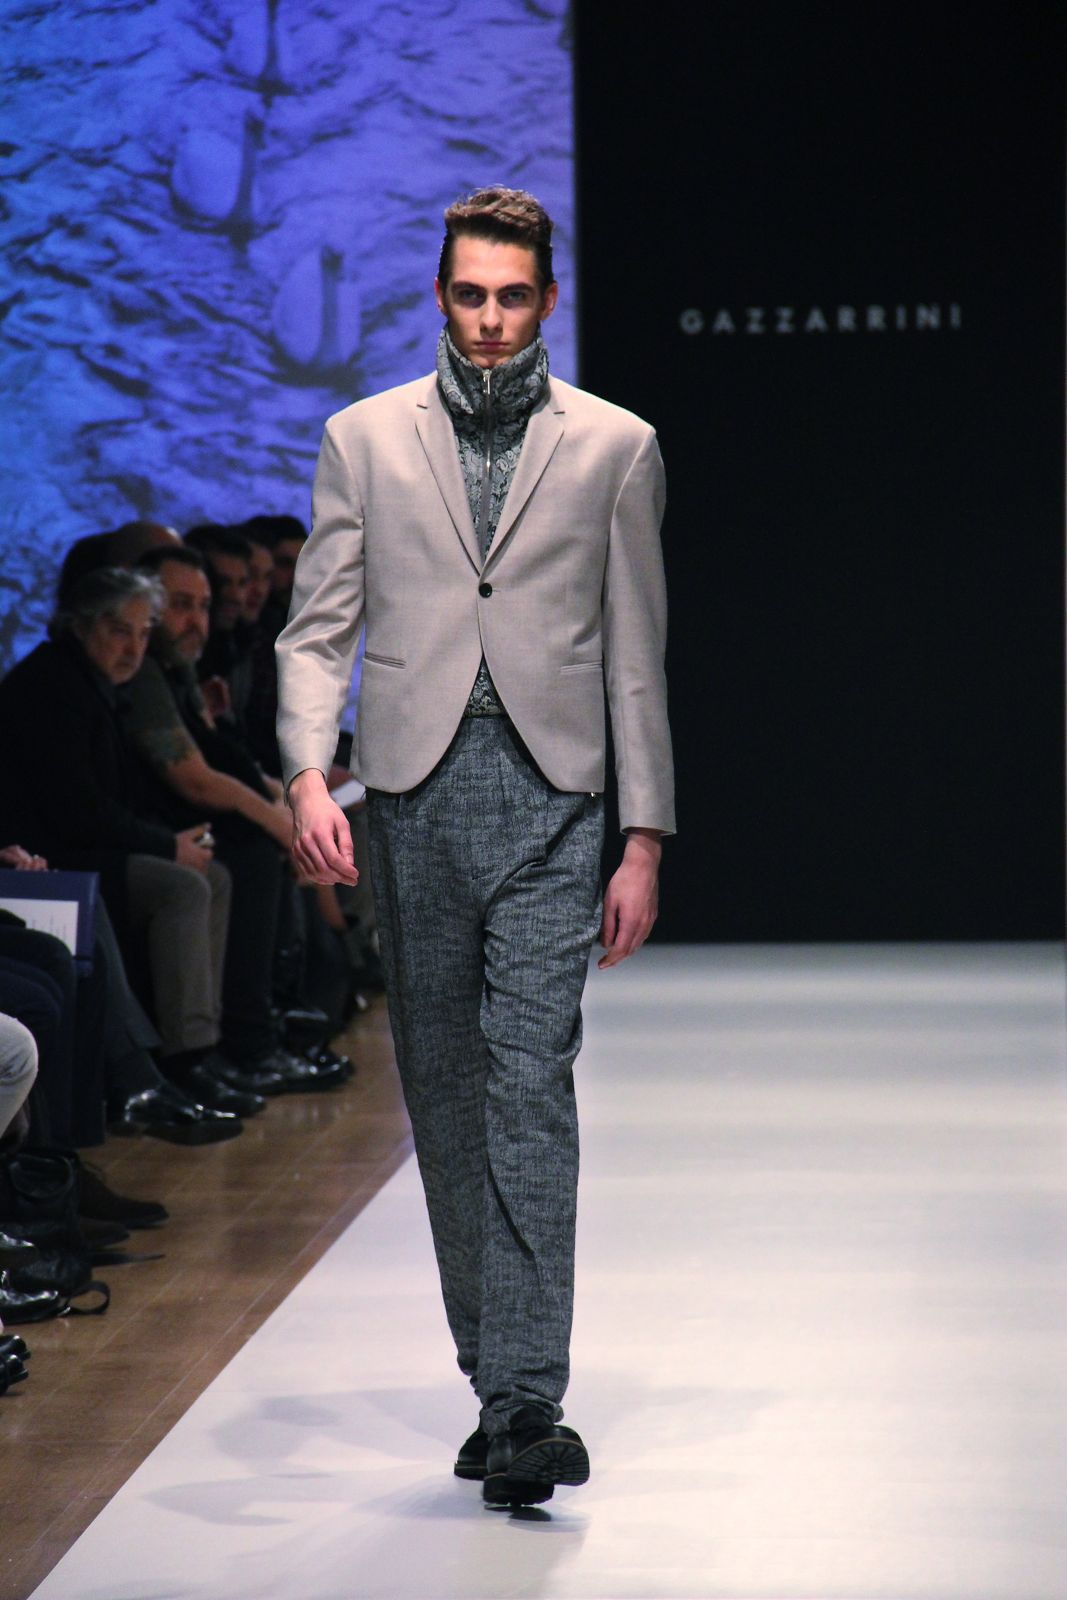 Gazzarrini Fall Winter 2012-2013 Men Fashion Show